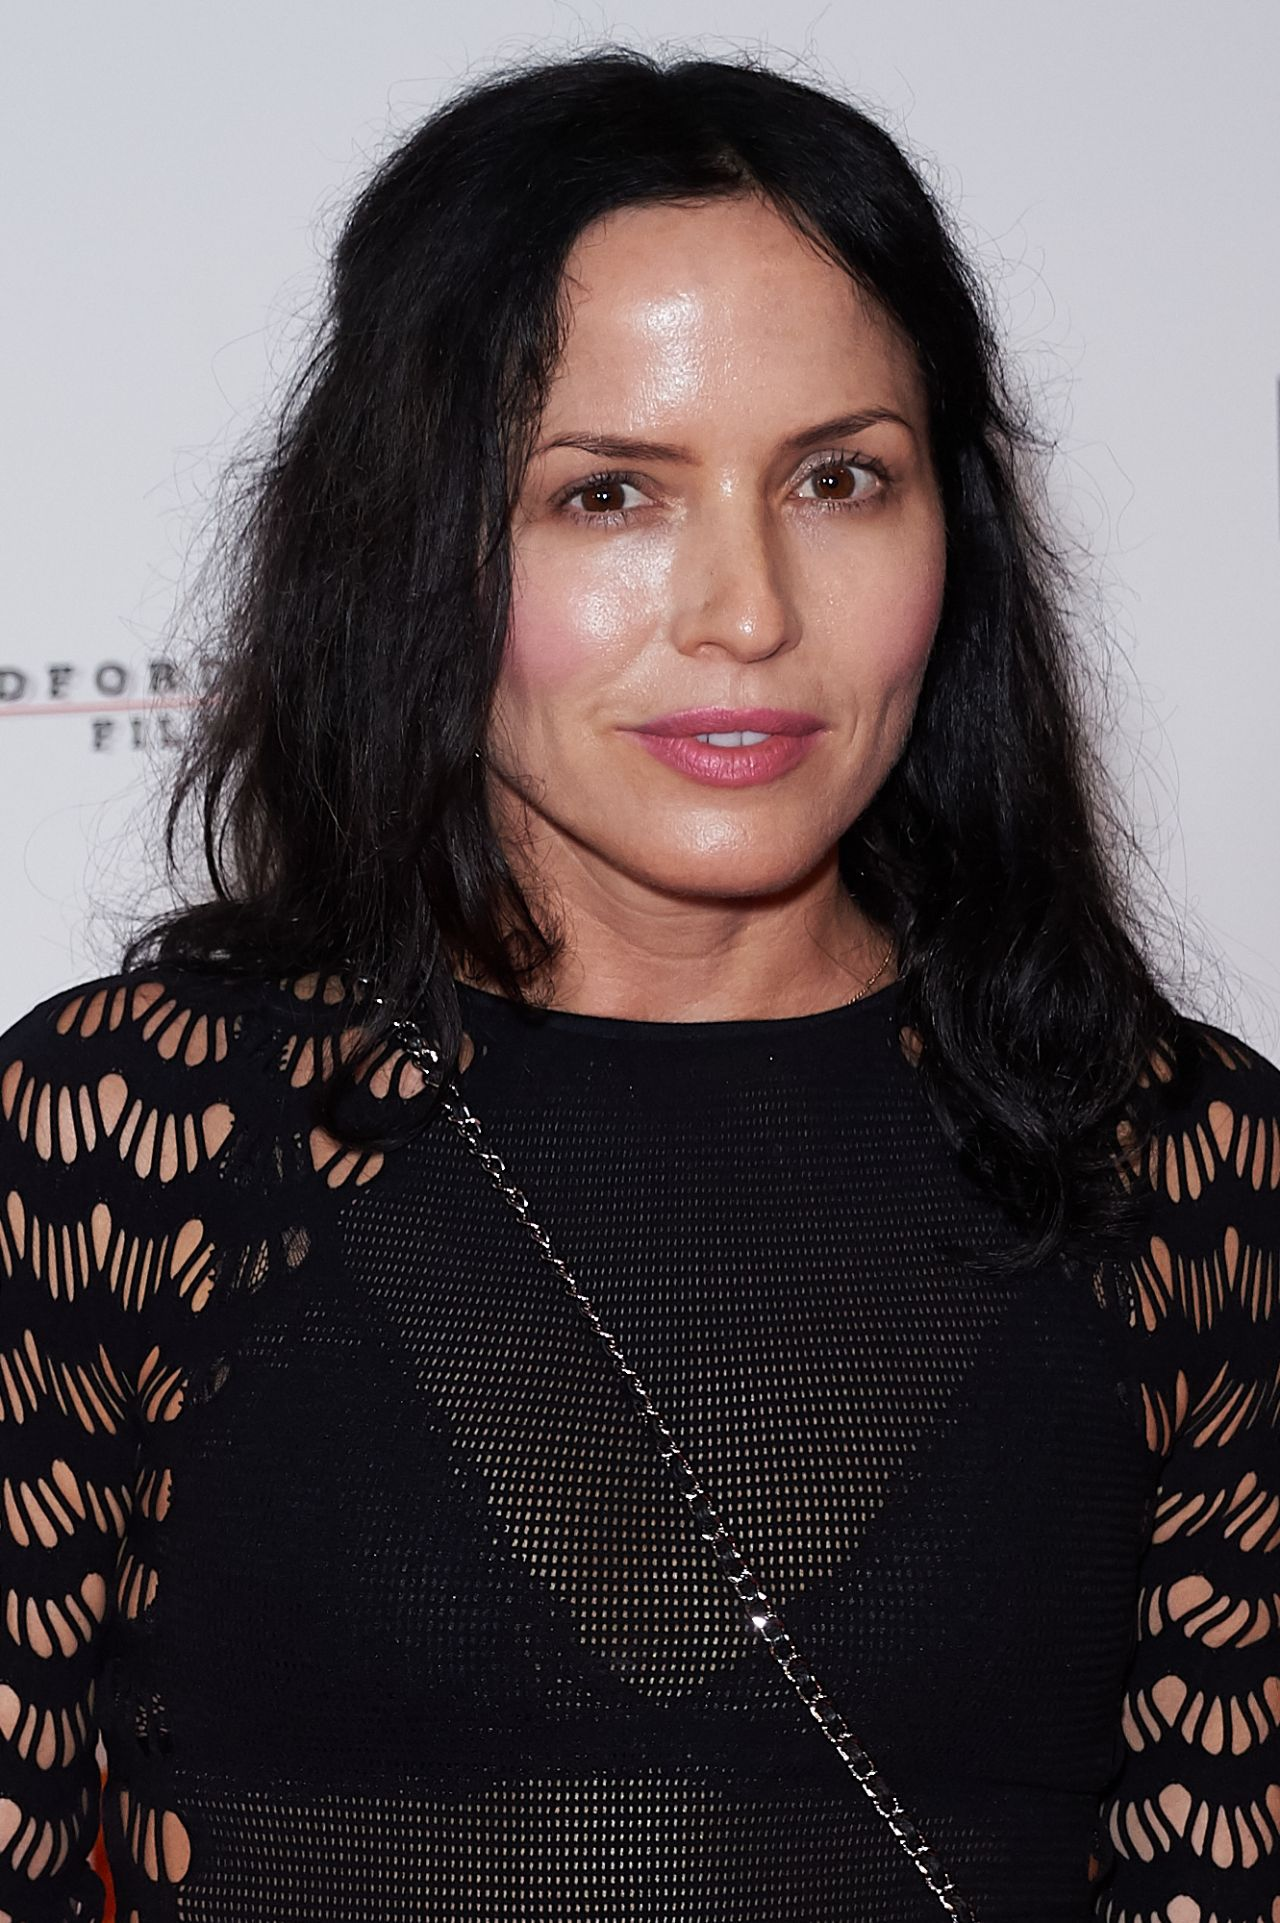 Andrea corr raindance film festival opening gala in london uk 09 andrea corr raindance film festival opening gala in london uk 09202017 altavistaventures Image collections